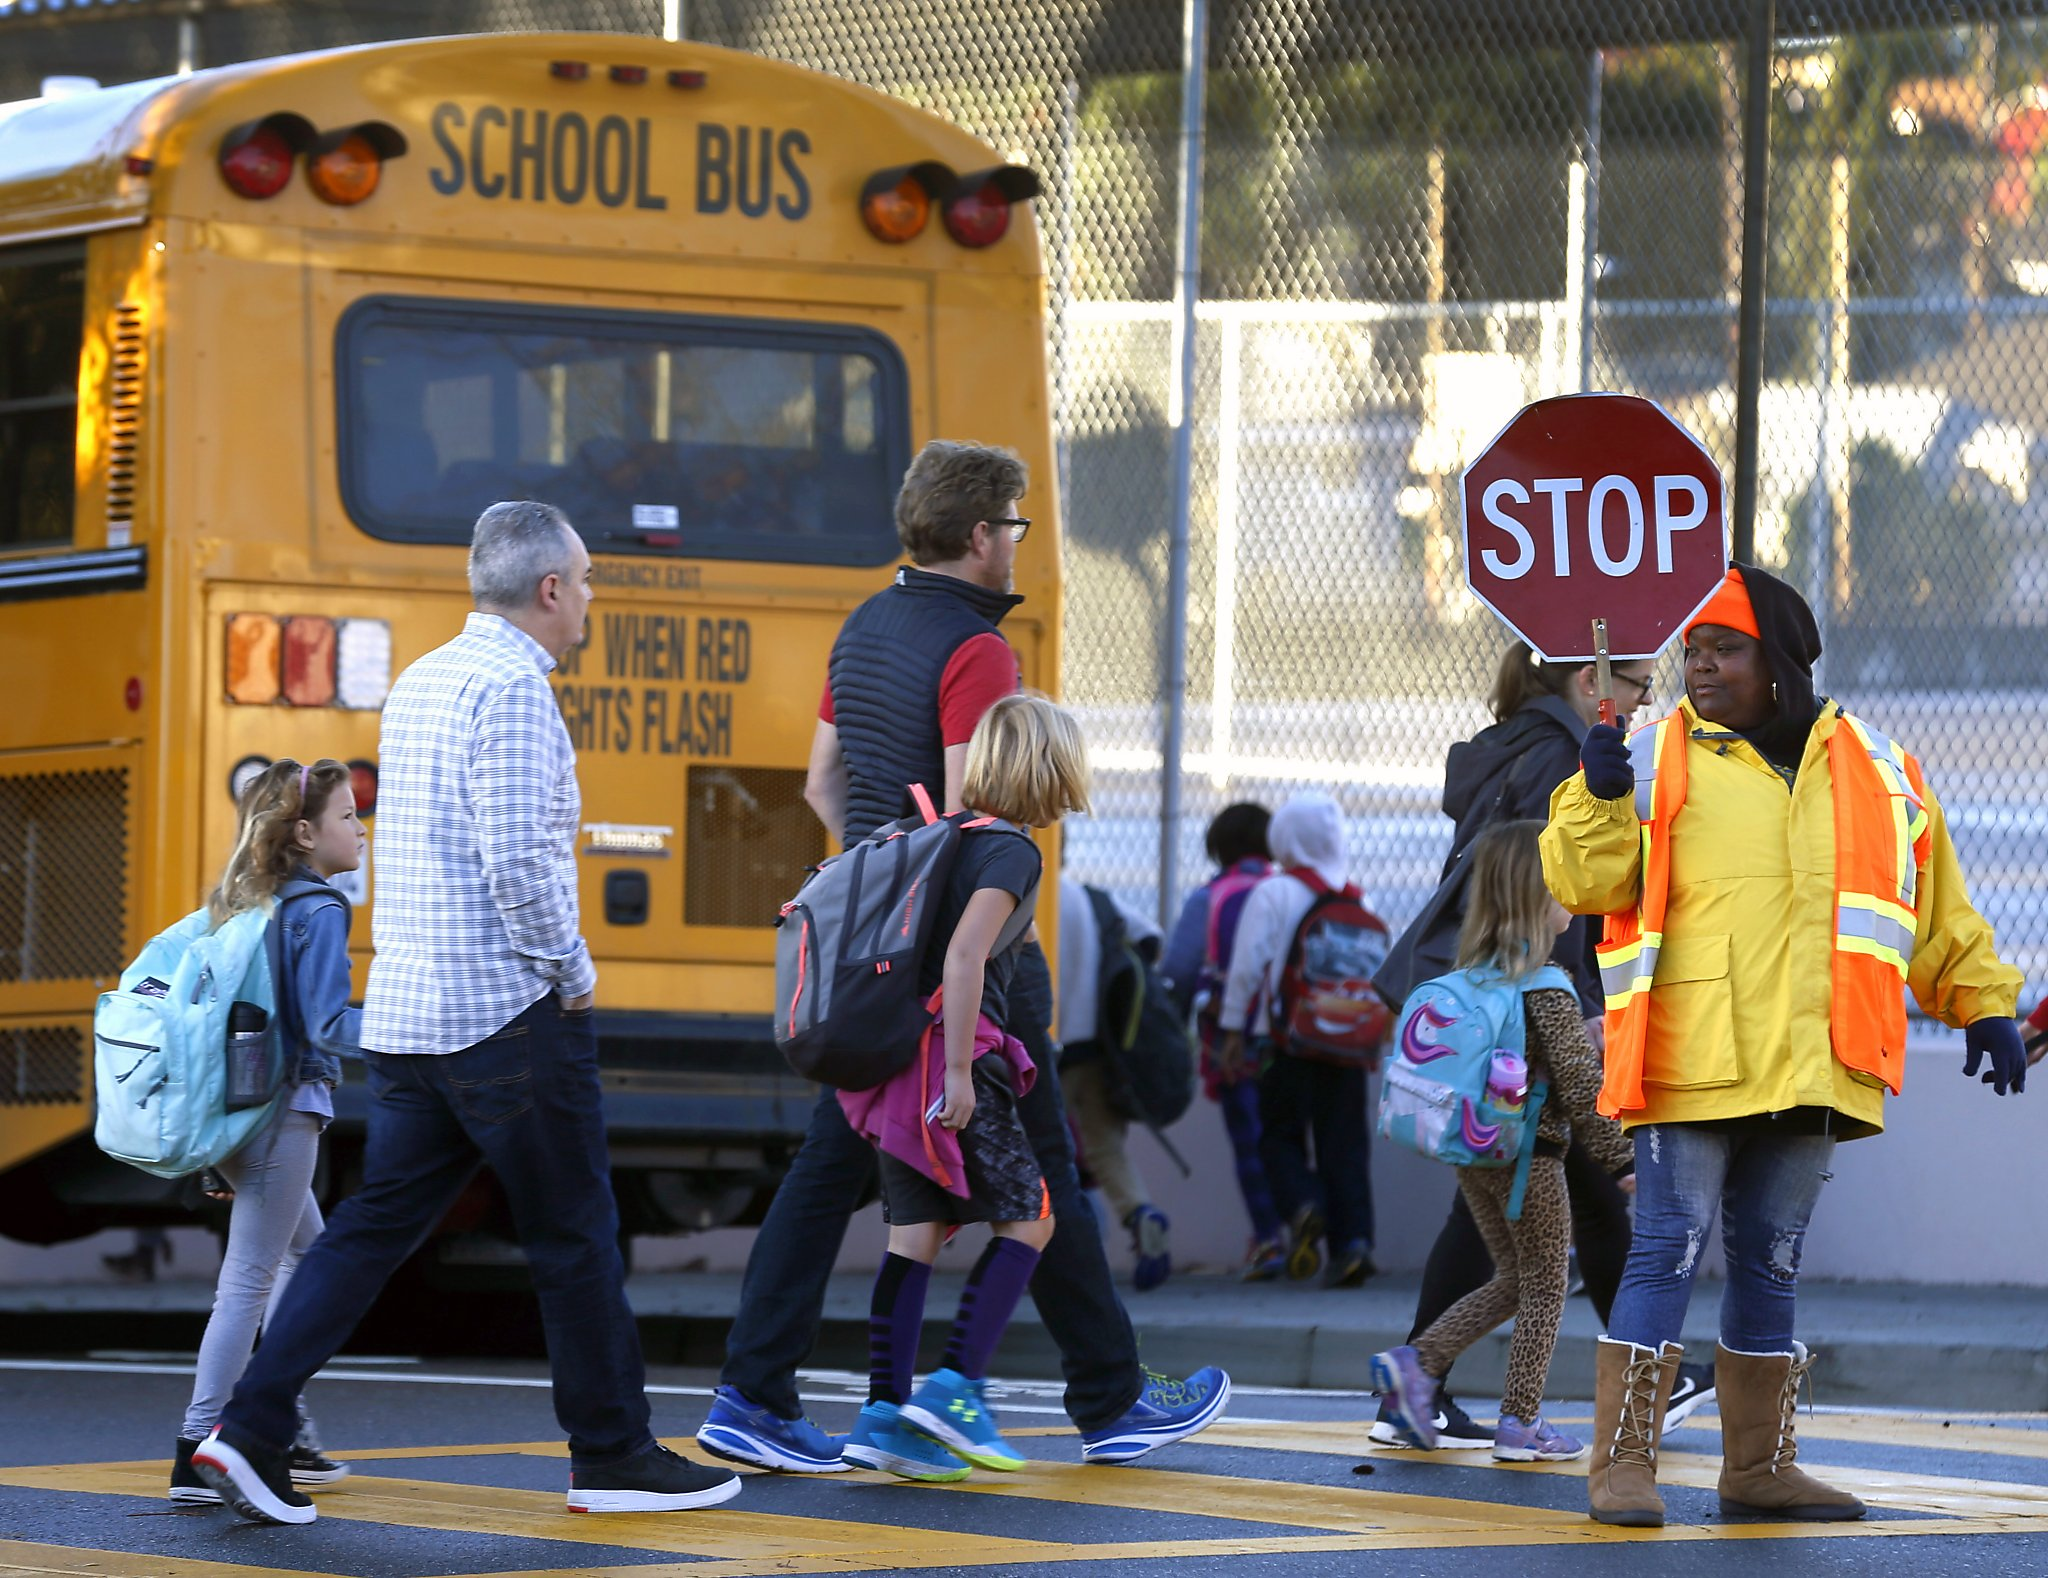 Oakland officials want to raise more preschool funding through new parcel tax | San Francisco Gate